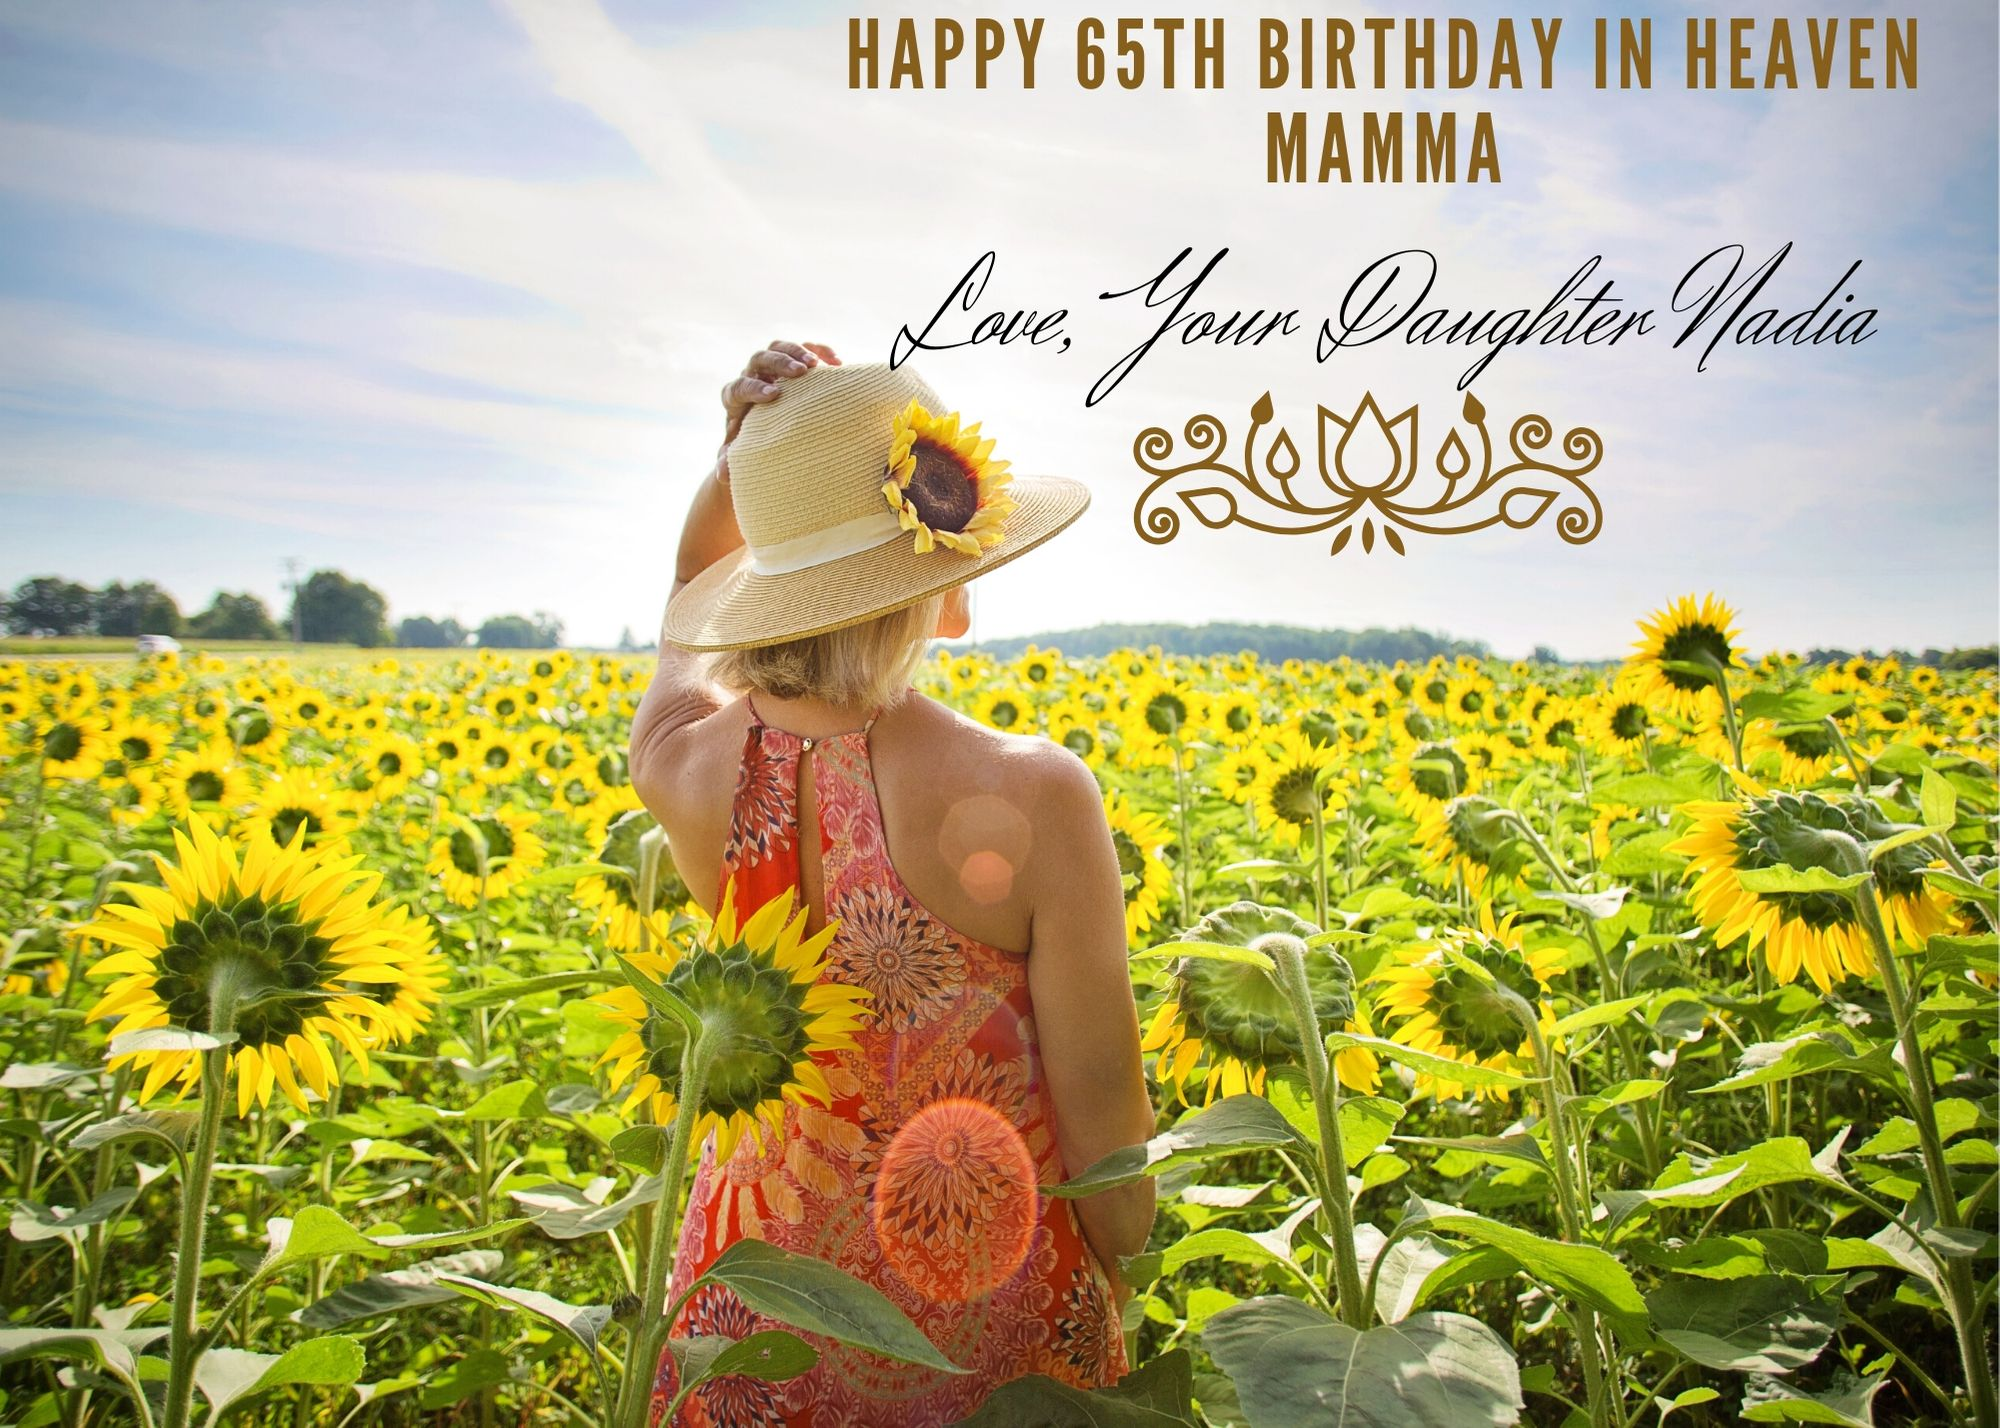 sunflower field woman with straw hat sunny day happy birthday in heaven mamma